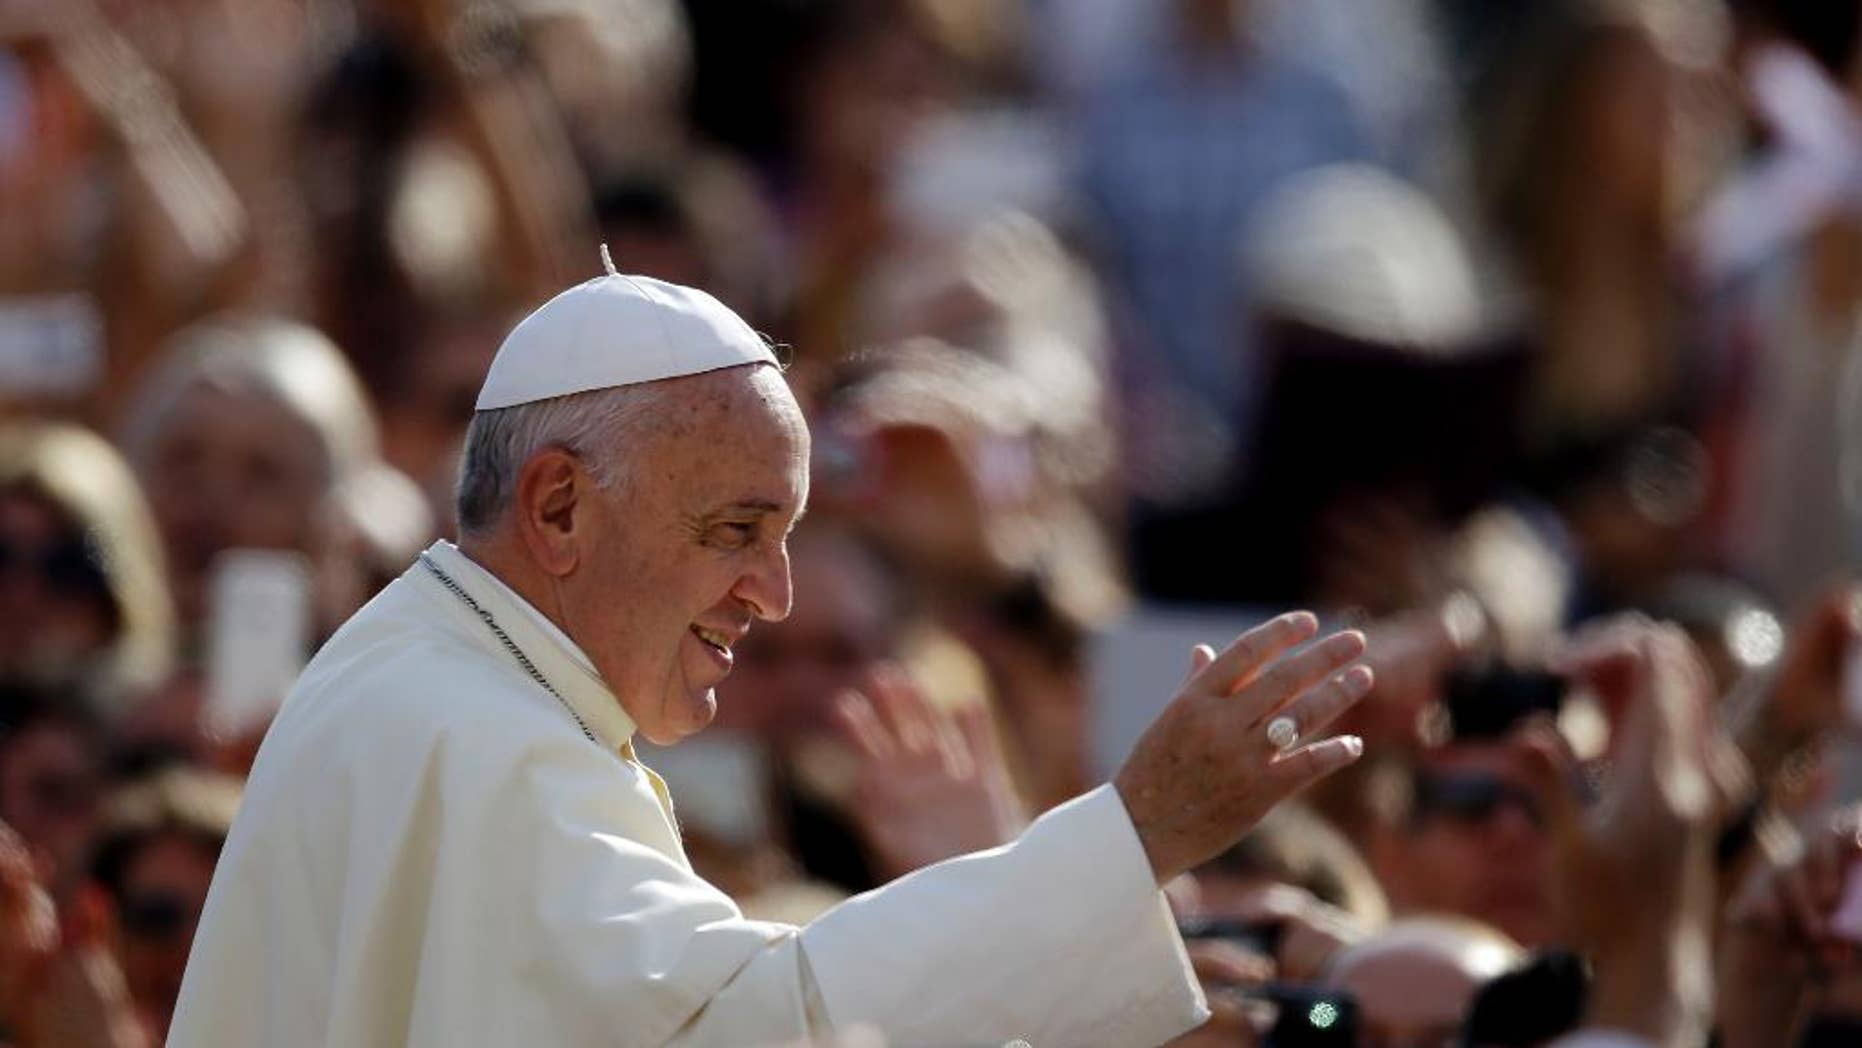 Pope Francis blesses faithful upon his arrival for the weekly general audience in St. Peter's Square at the Vatican, Wednesday, Oct. 1, 2014. (AP Photo/Gregorio Borgia)